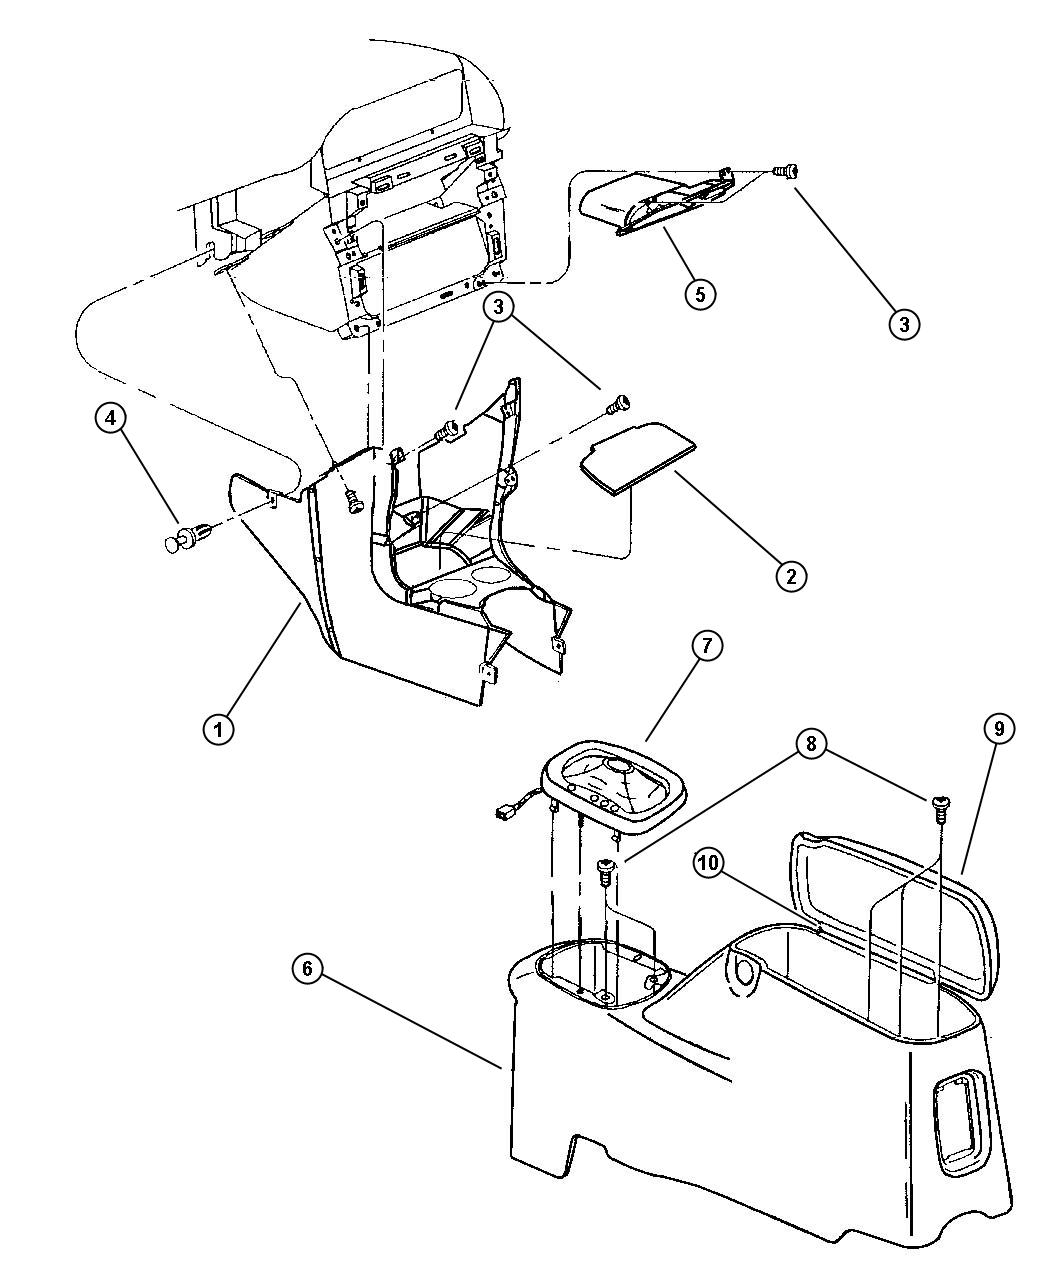 Service Manual How To Remove Head On A Chrysler Cirrus